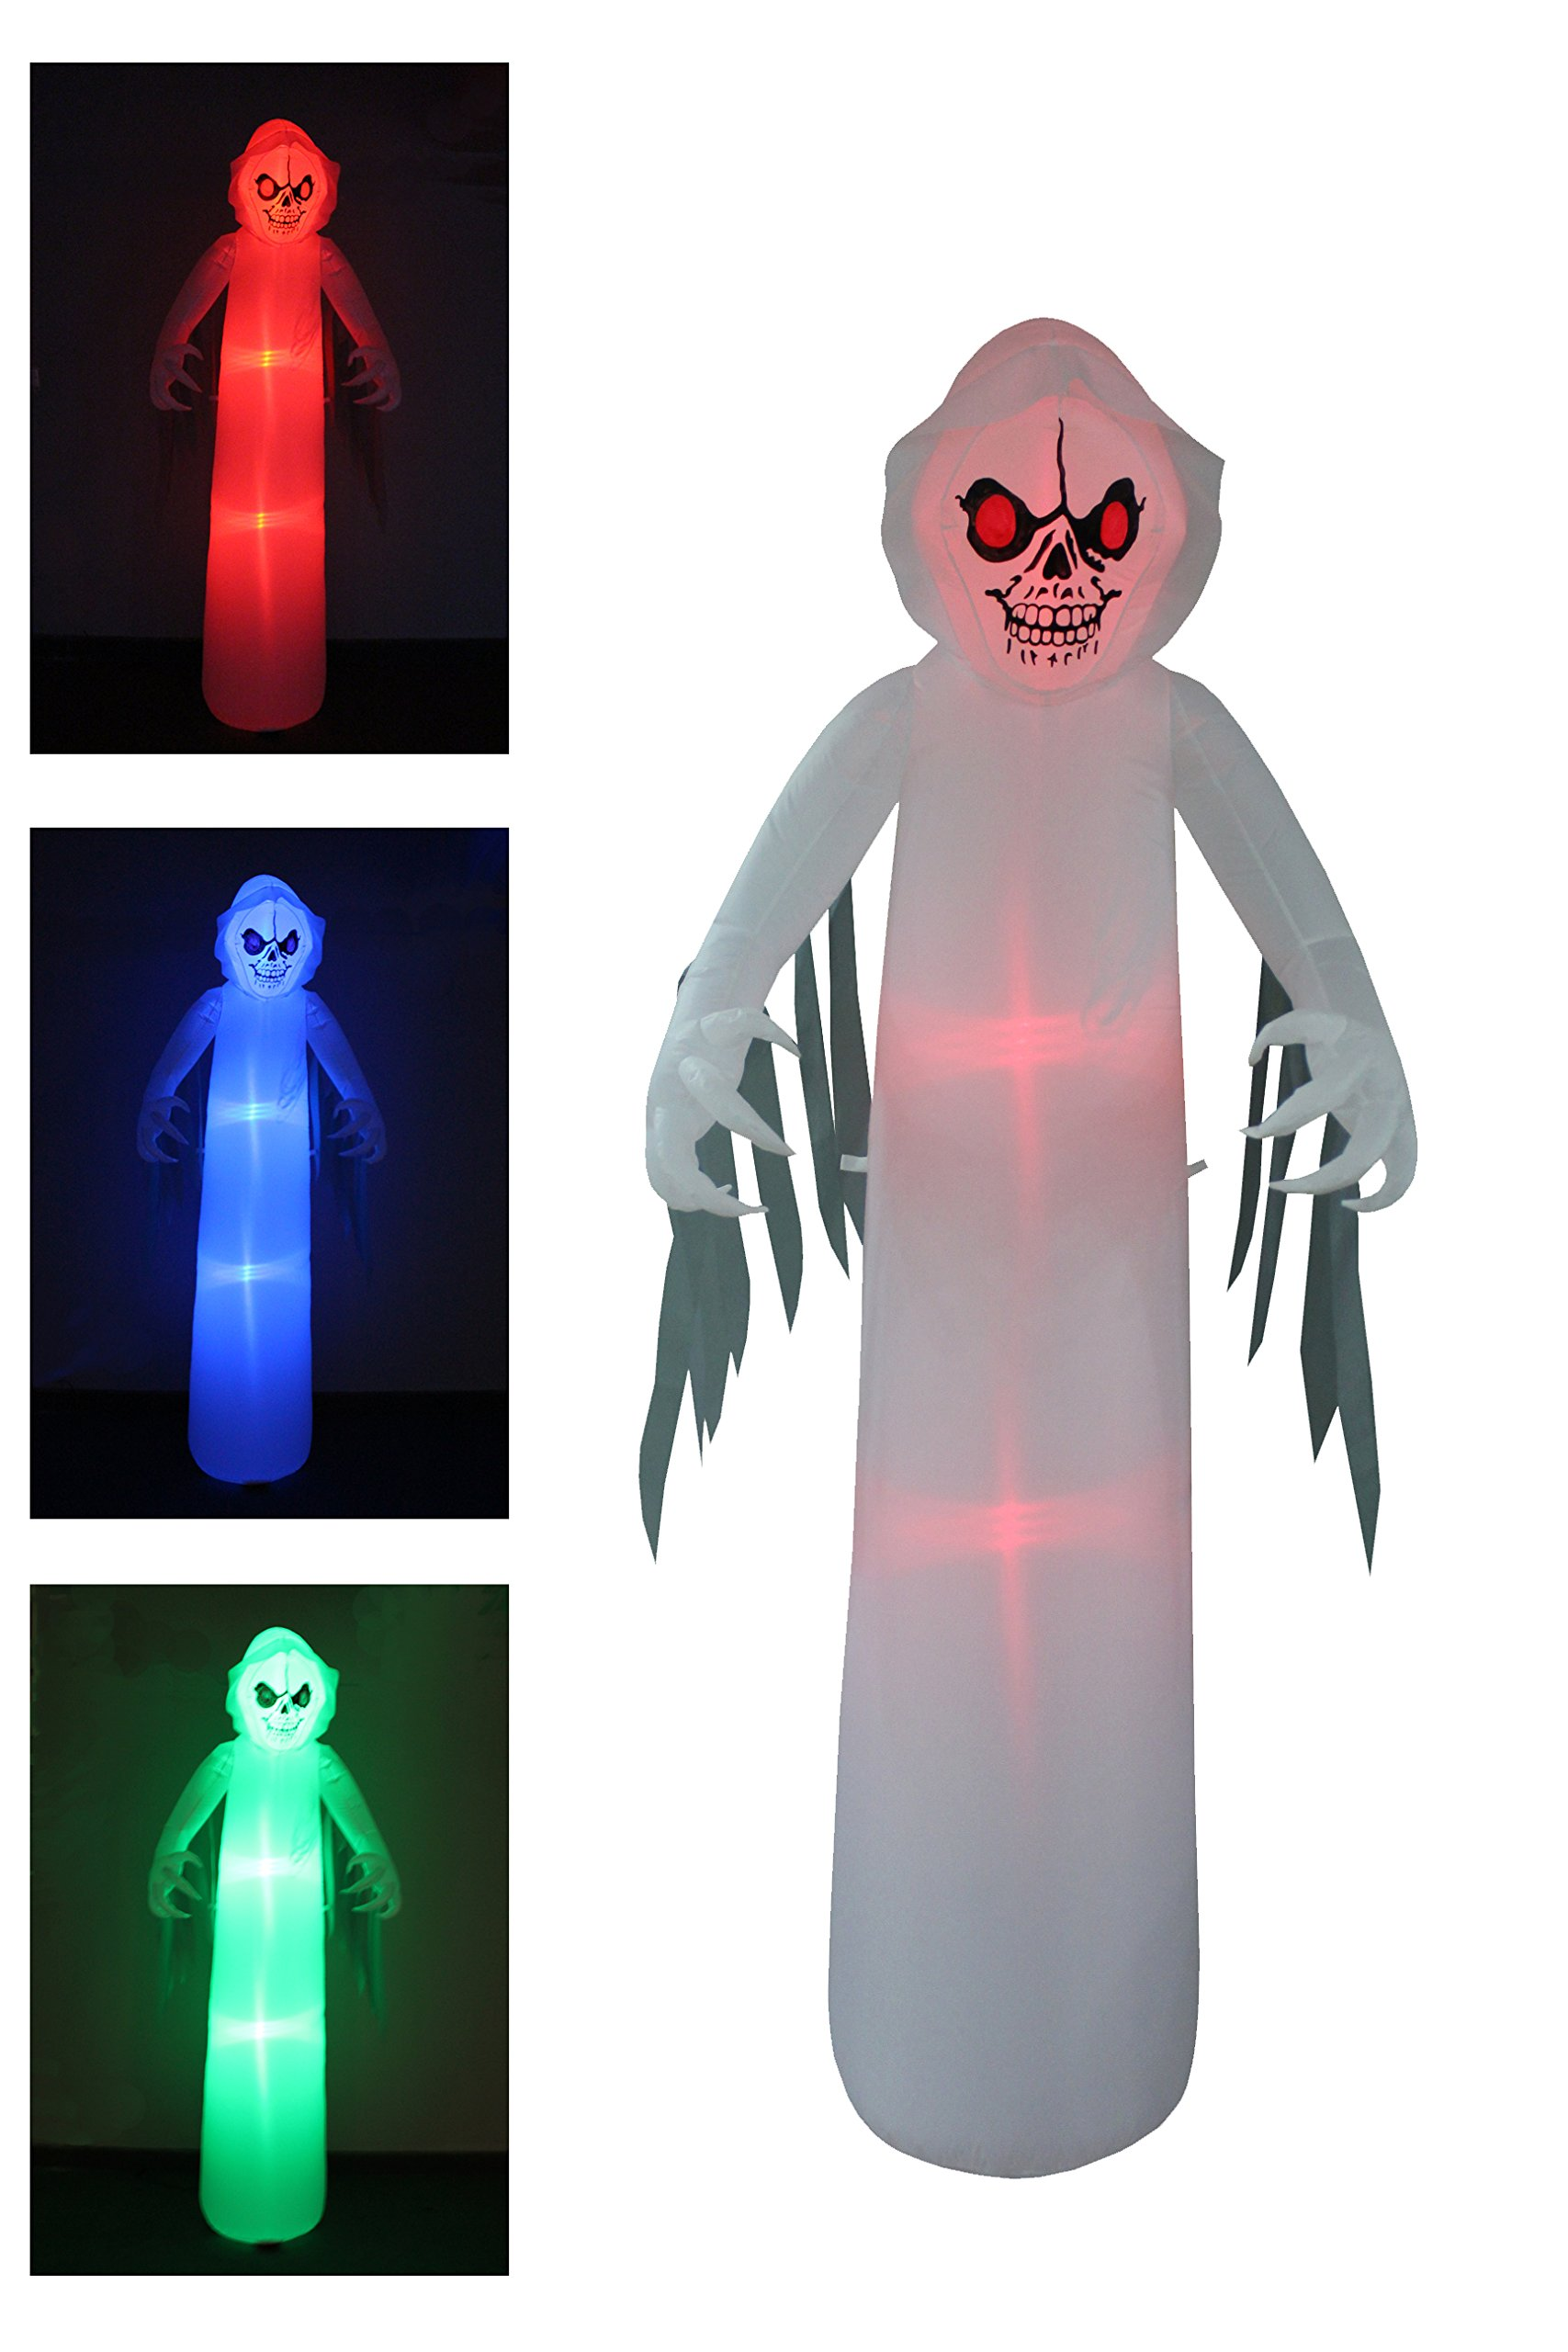 8 Foot Tall Lighted Halloween Inflatable Ghost Monster with Color Changing LEDs Party Decoration for Outdoor Indoor Holiday Decorations, Blow Up LED Lighted Christmas Yard Decor, Giant Lawn Inflatable